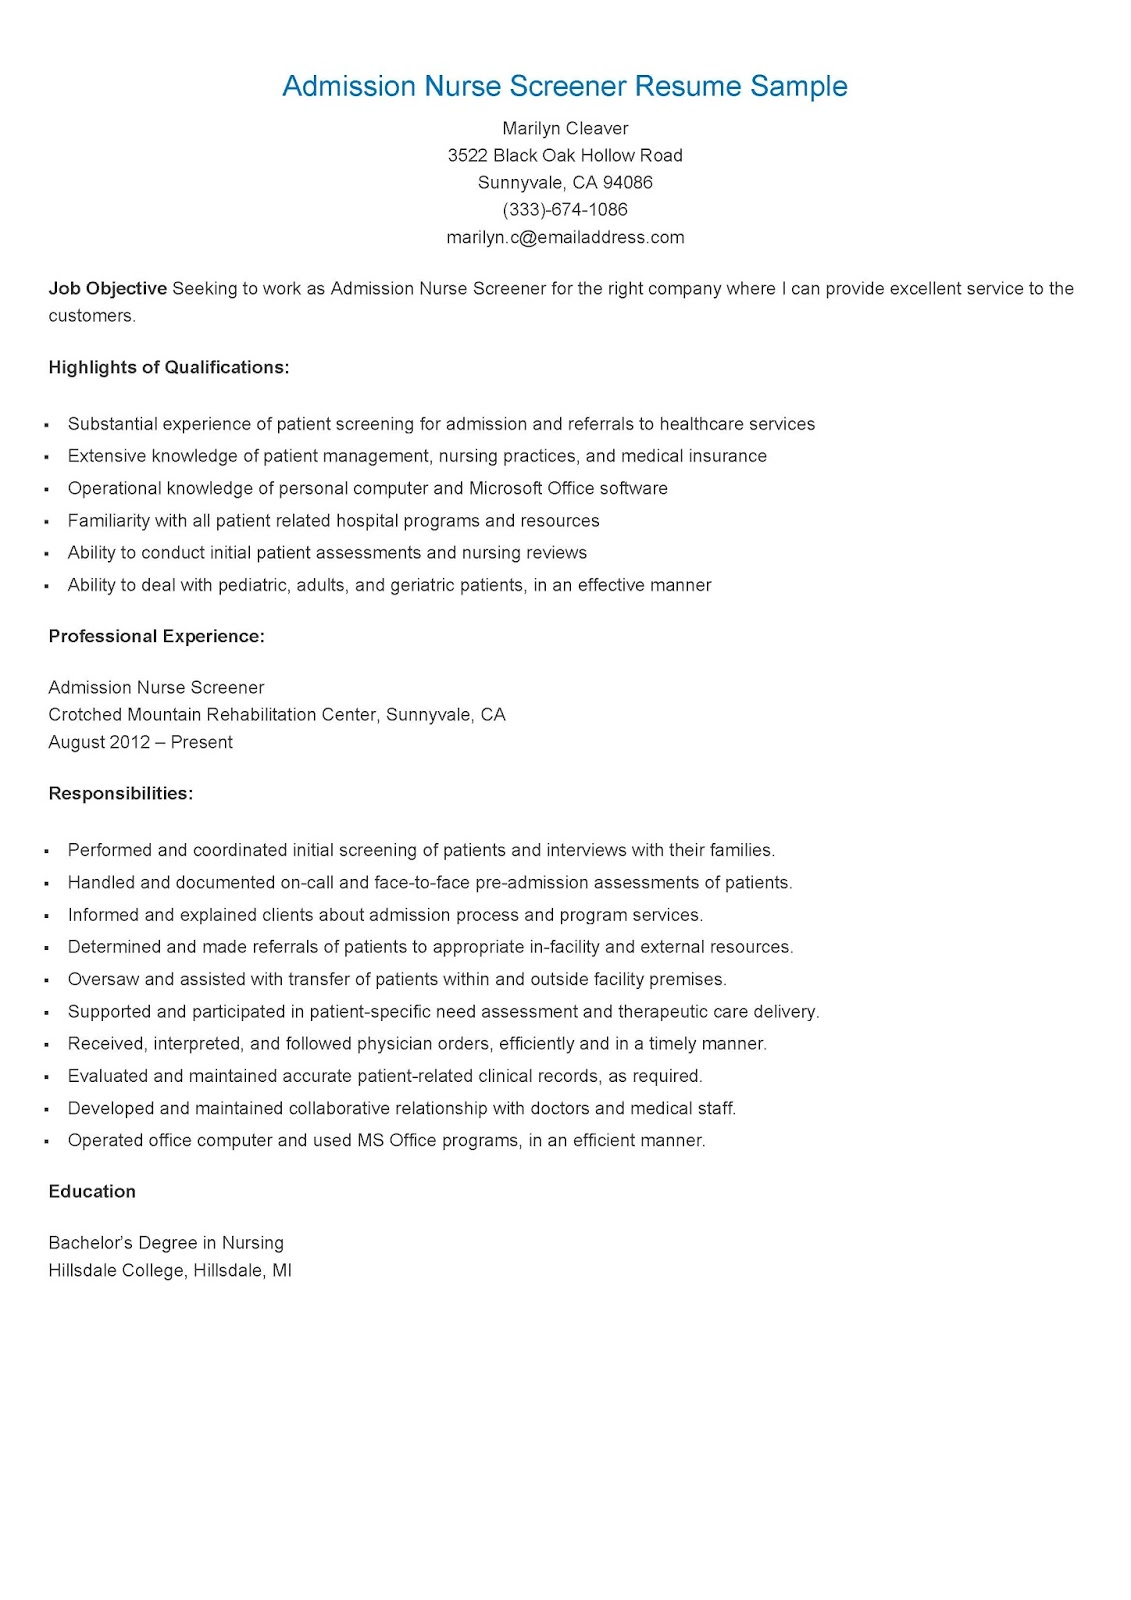 resume samples admission nurse screener resume sample